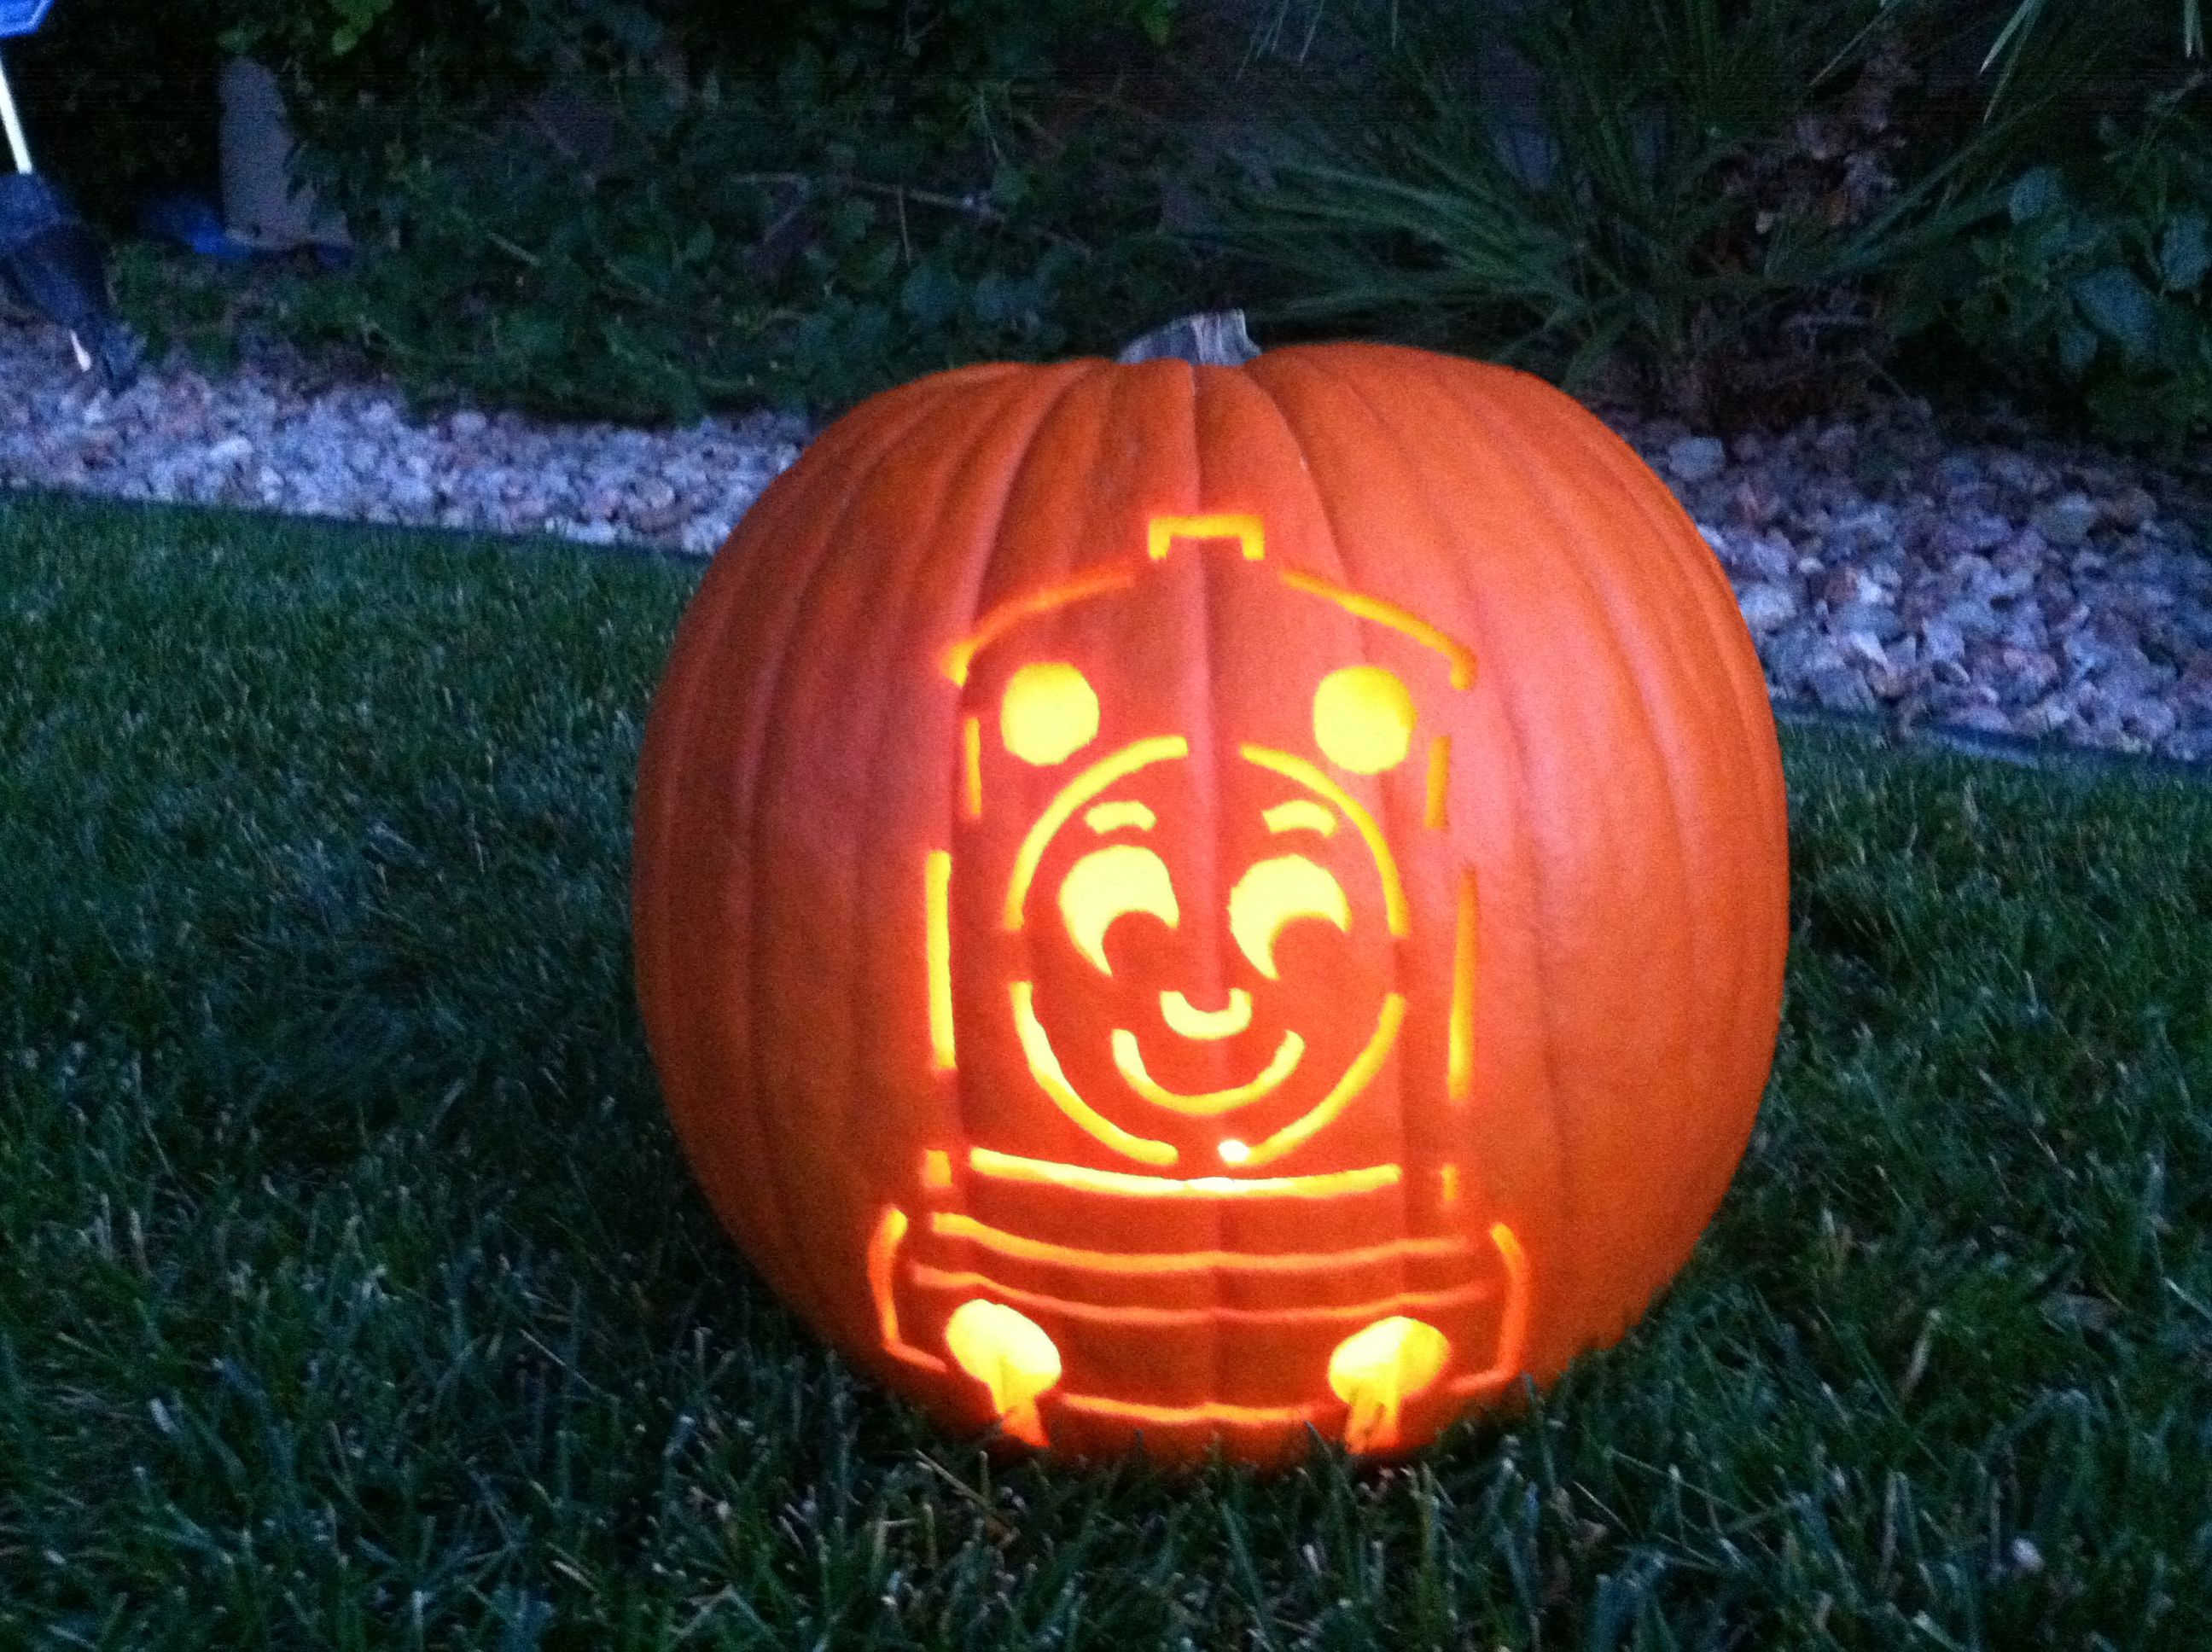 Thomas the train pumpkin carving halloween ideas for Thomas pumpkin template